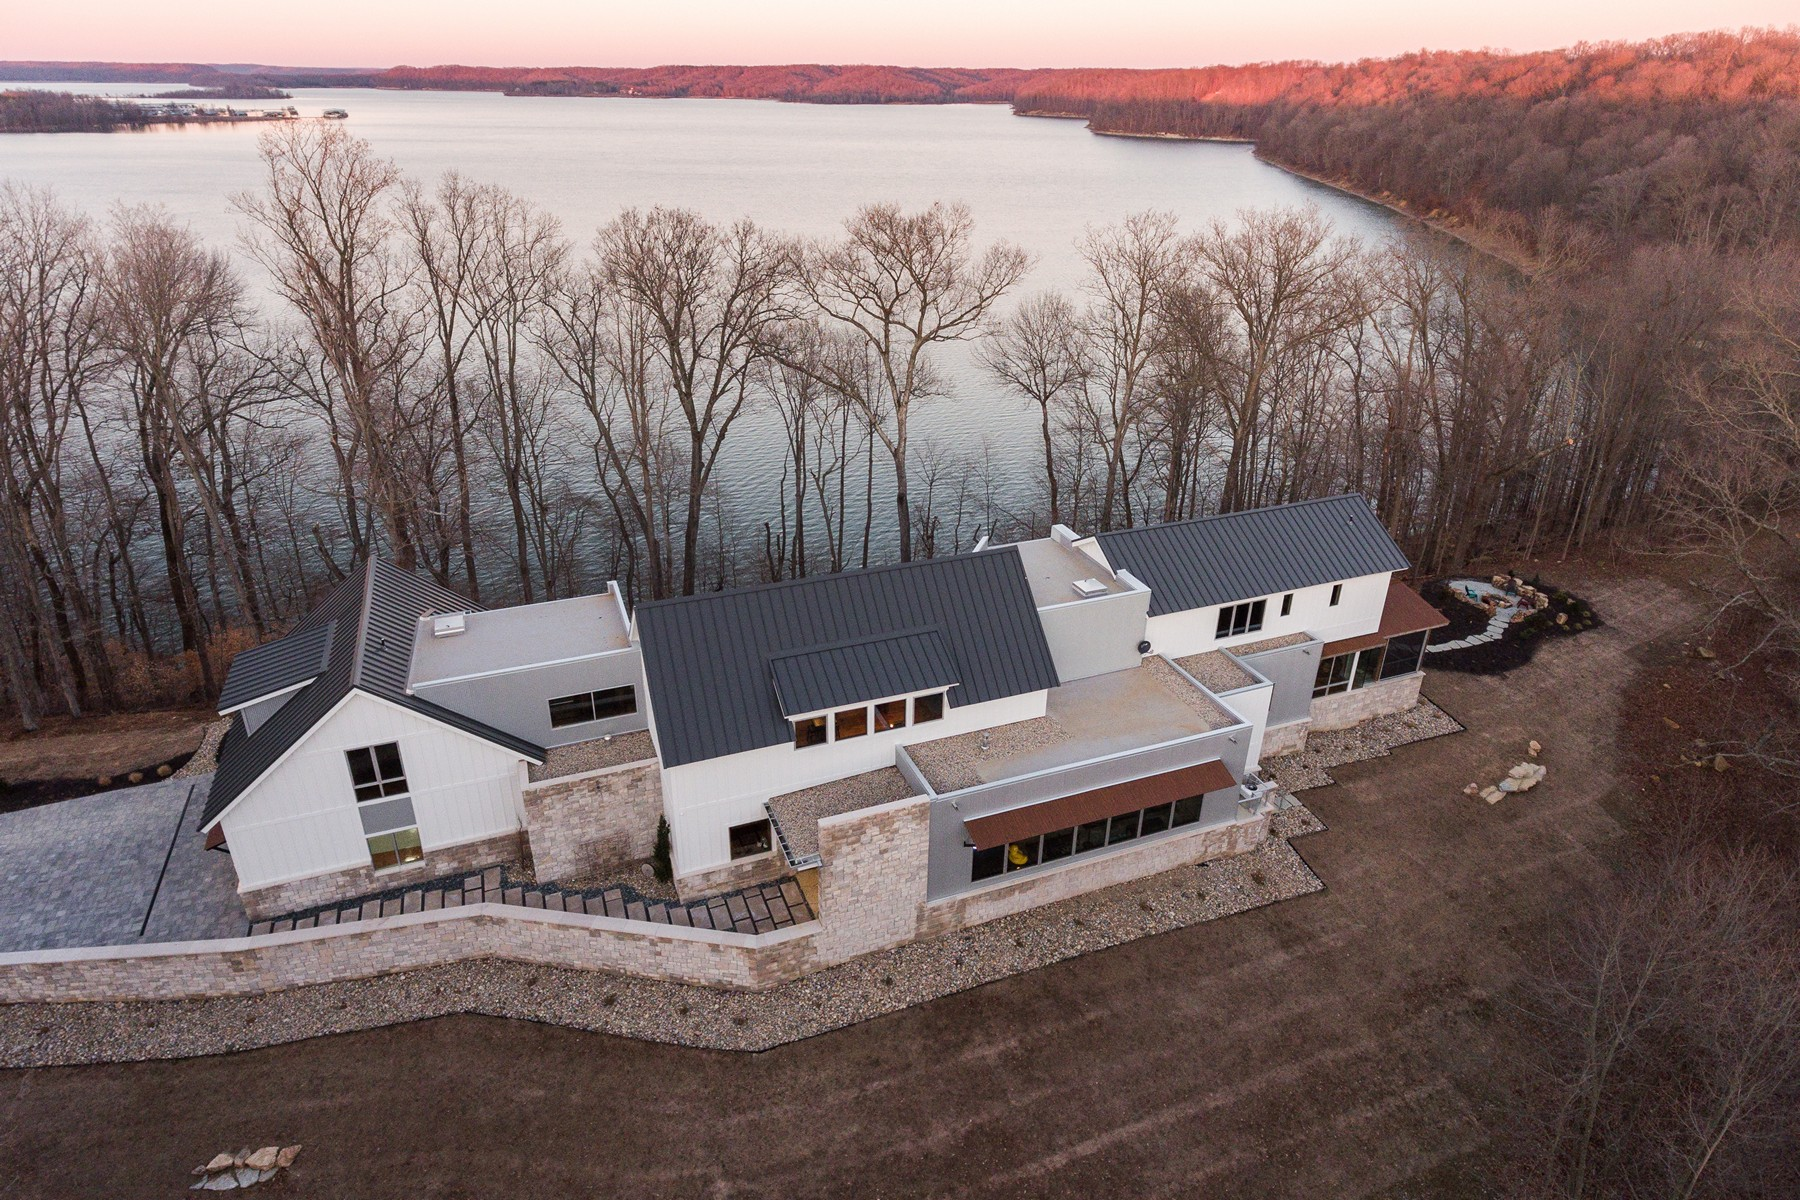 Single Family Home for Sale at Lake Monroe Waterfront Perfection 2771 E. Pedigo Bay Drive Bloomington, Indiana 47401 United States